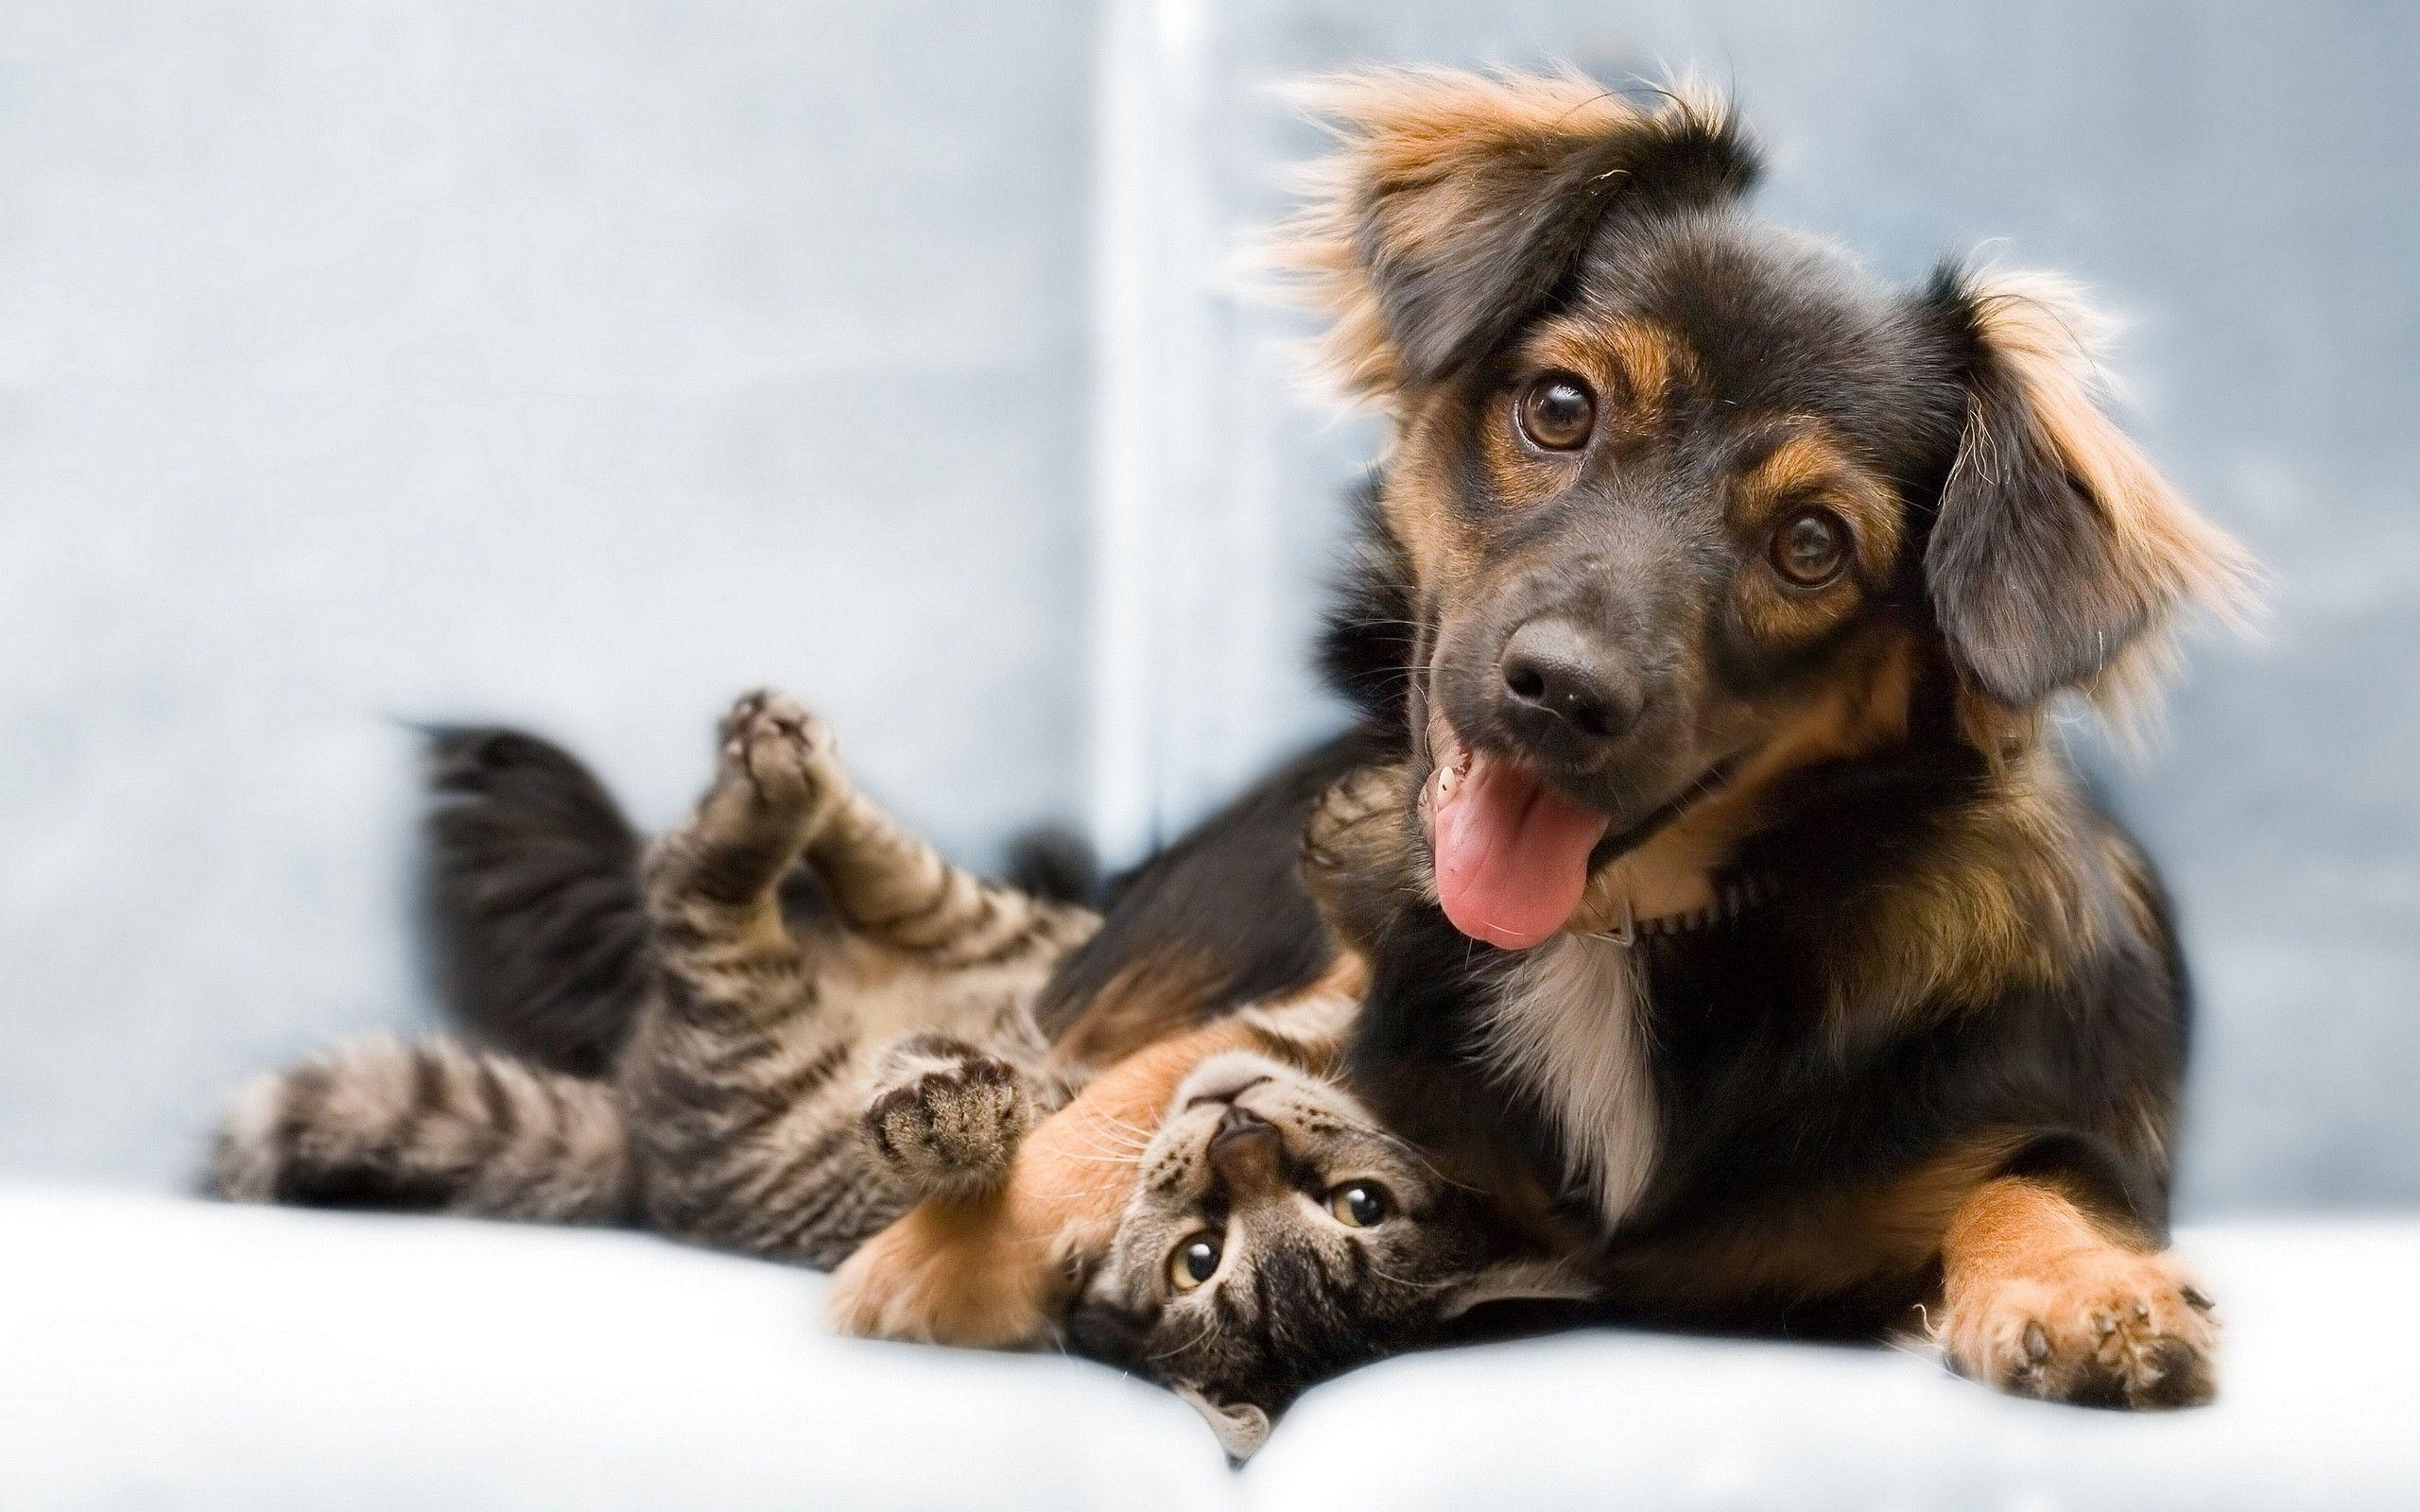 Cat And Dog Wallpapers 2560x1600